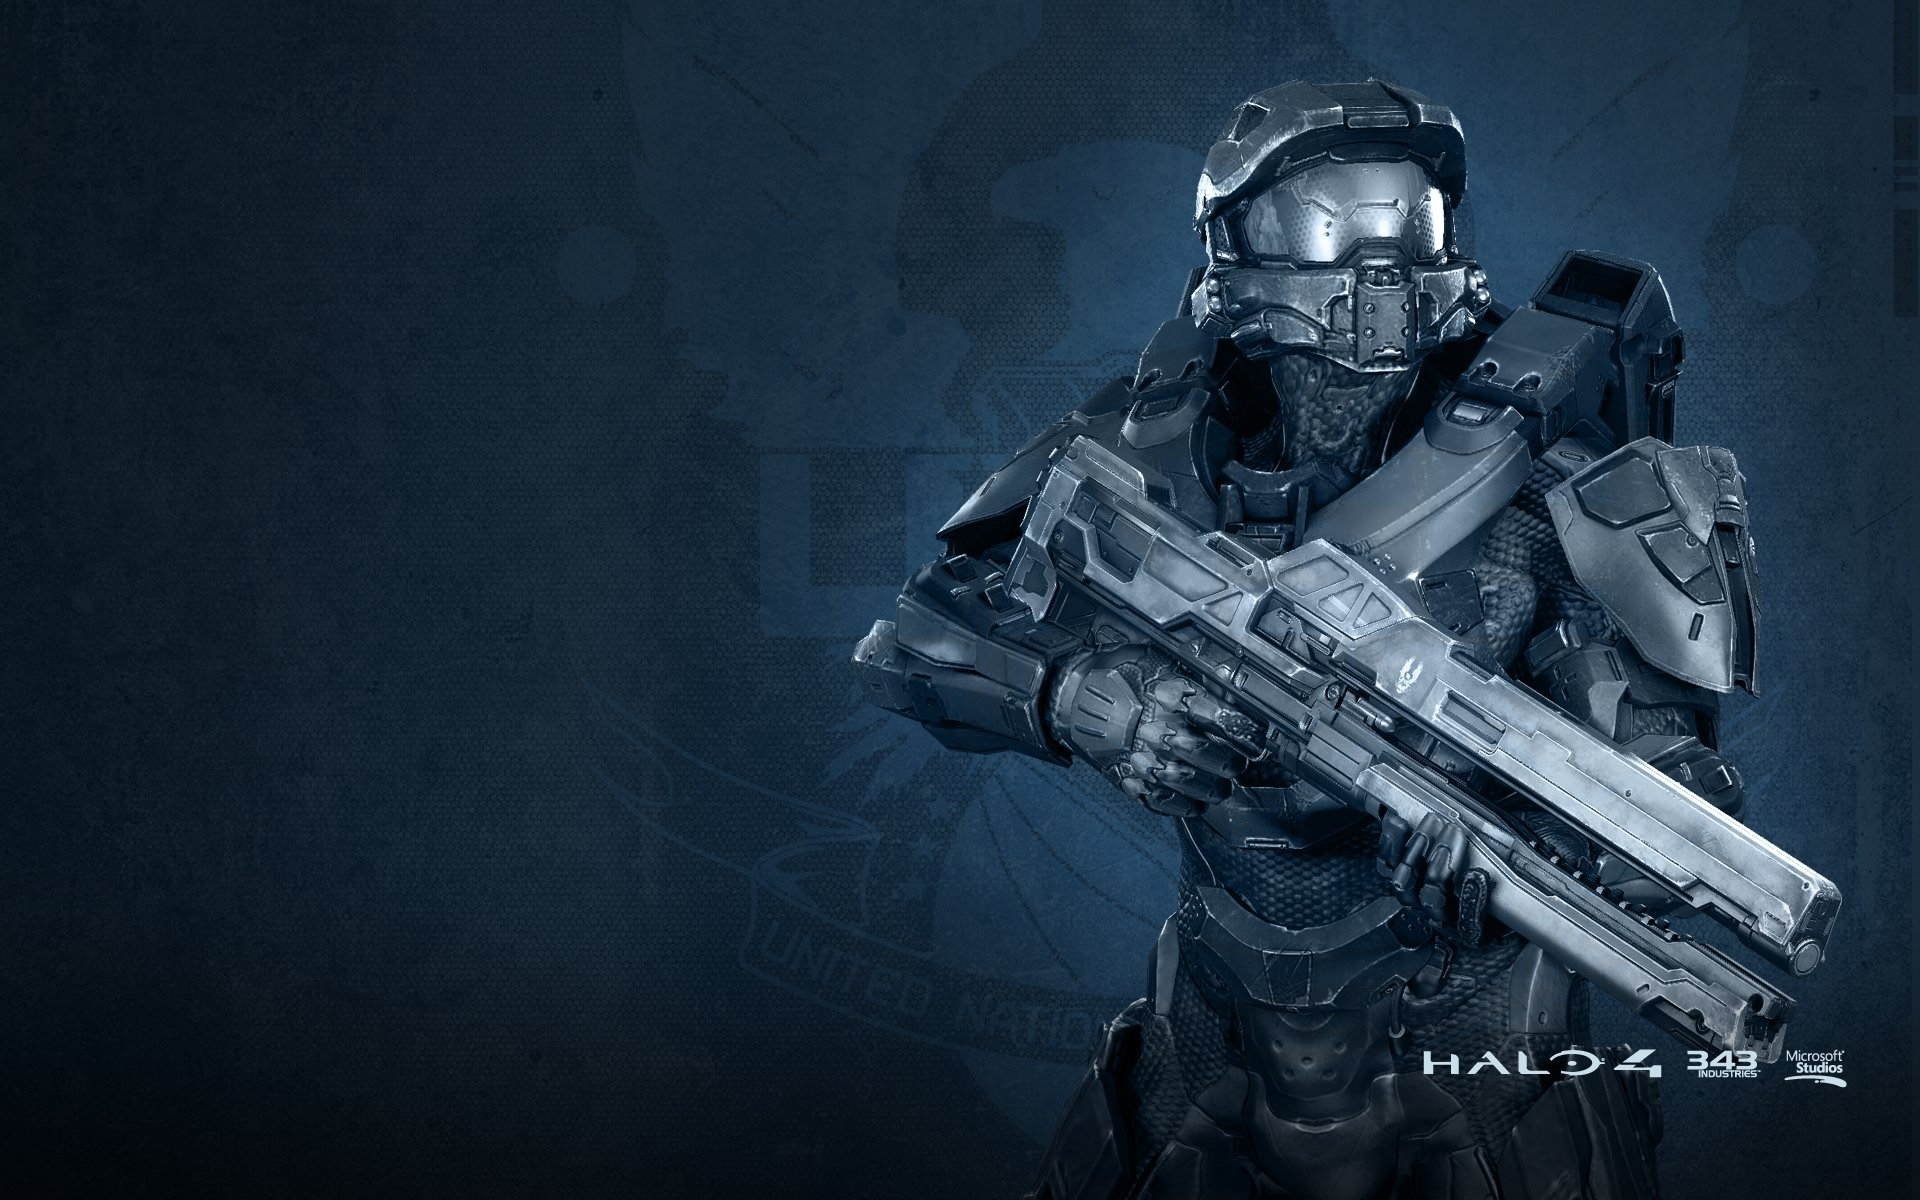 91 halo 4 hd wallpapers | background images - wallpaper abyss